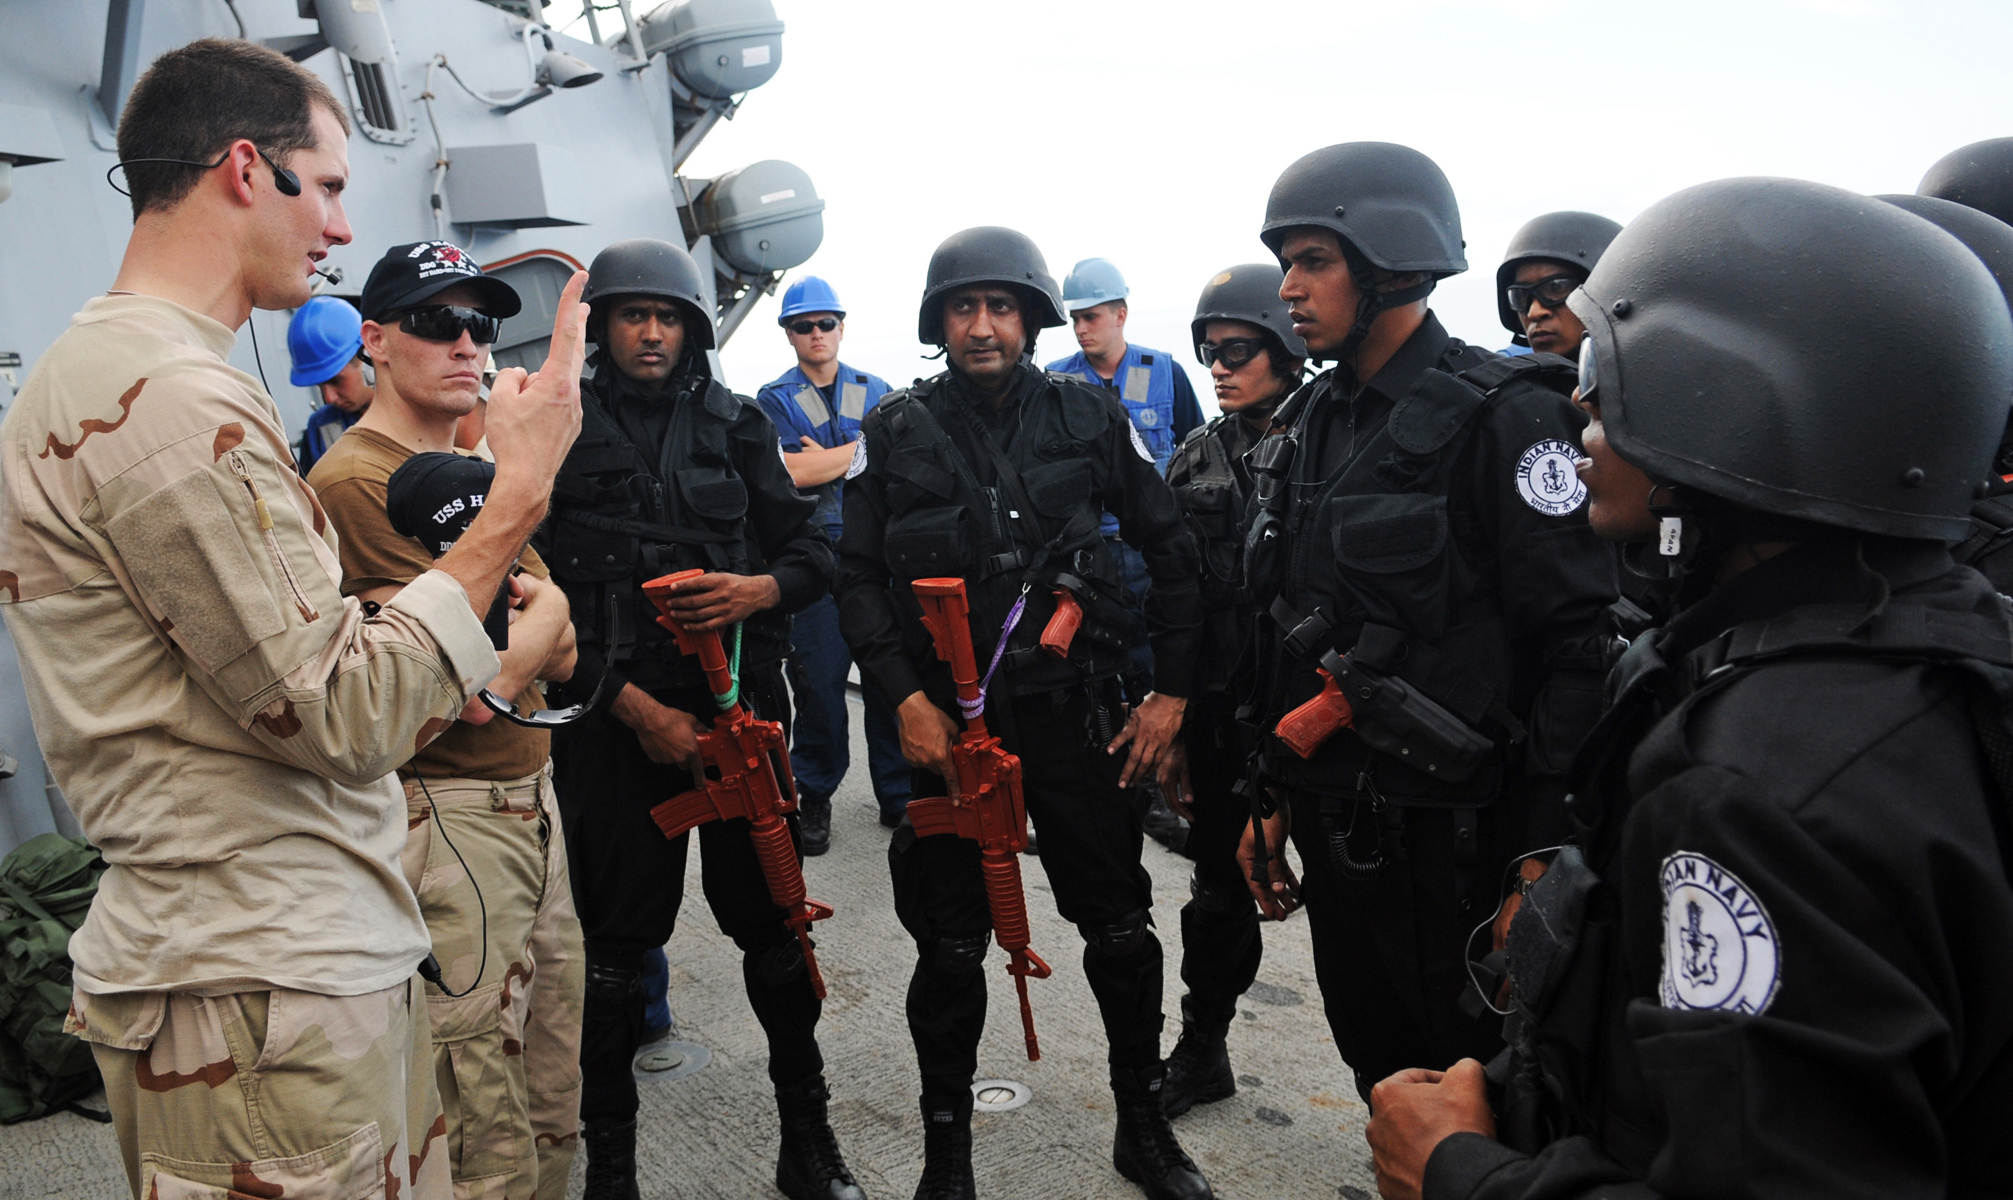 120412-N-ZF681-172 INDIAN OCEAN (April 12, 2012) Ensign Timothy Eick gives a briefing to members of the visit, board search and seizure team assigned to the Indian navy frigate Satpura (F-48) during a training exercise aboard the guided-missile destroyer USS Halsey (DDG 97). Halsey and Satpura are participating in Malabar, a scheduled naval training exercise conducted to advance multinational maritime relationships and mutual security. (U.S. Navy photo by Mass Communication Specialist 3rd Class Christopher Farrington/Released)